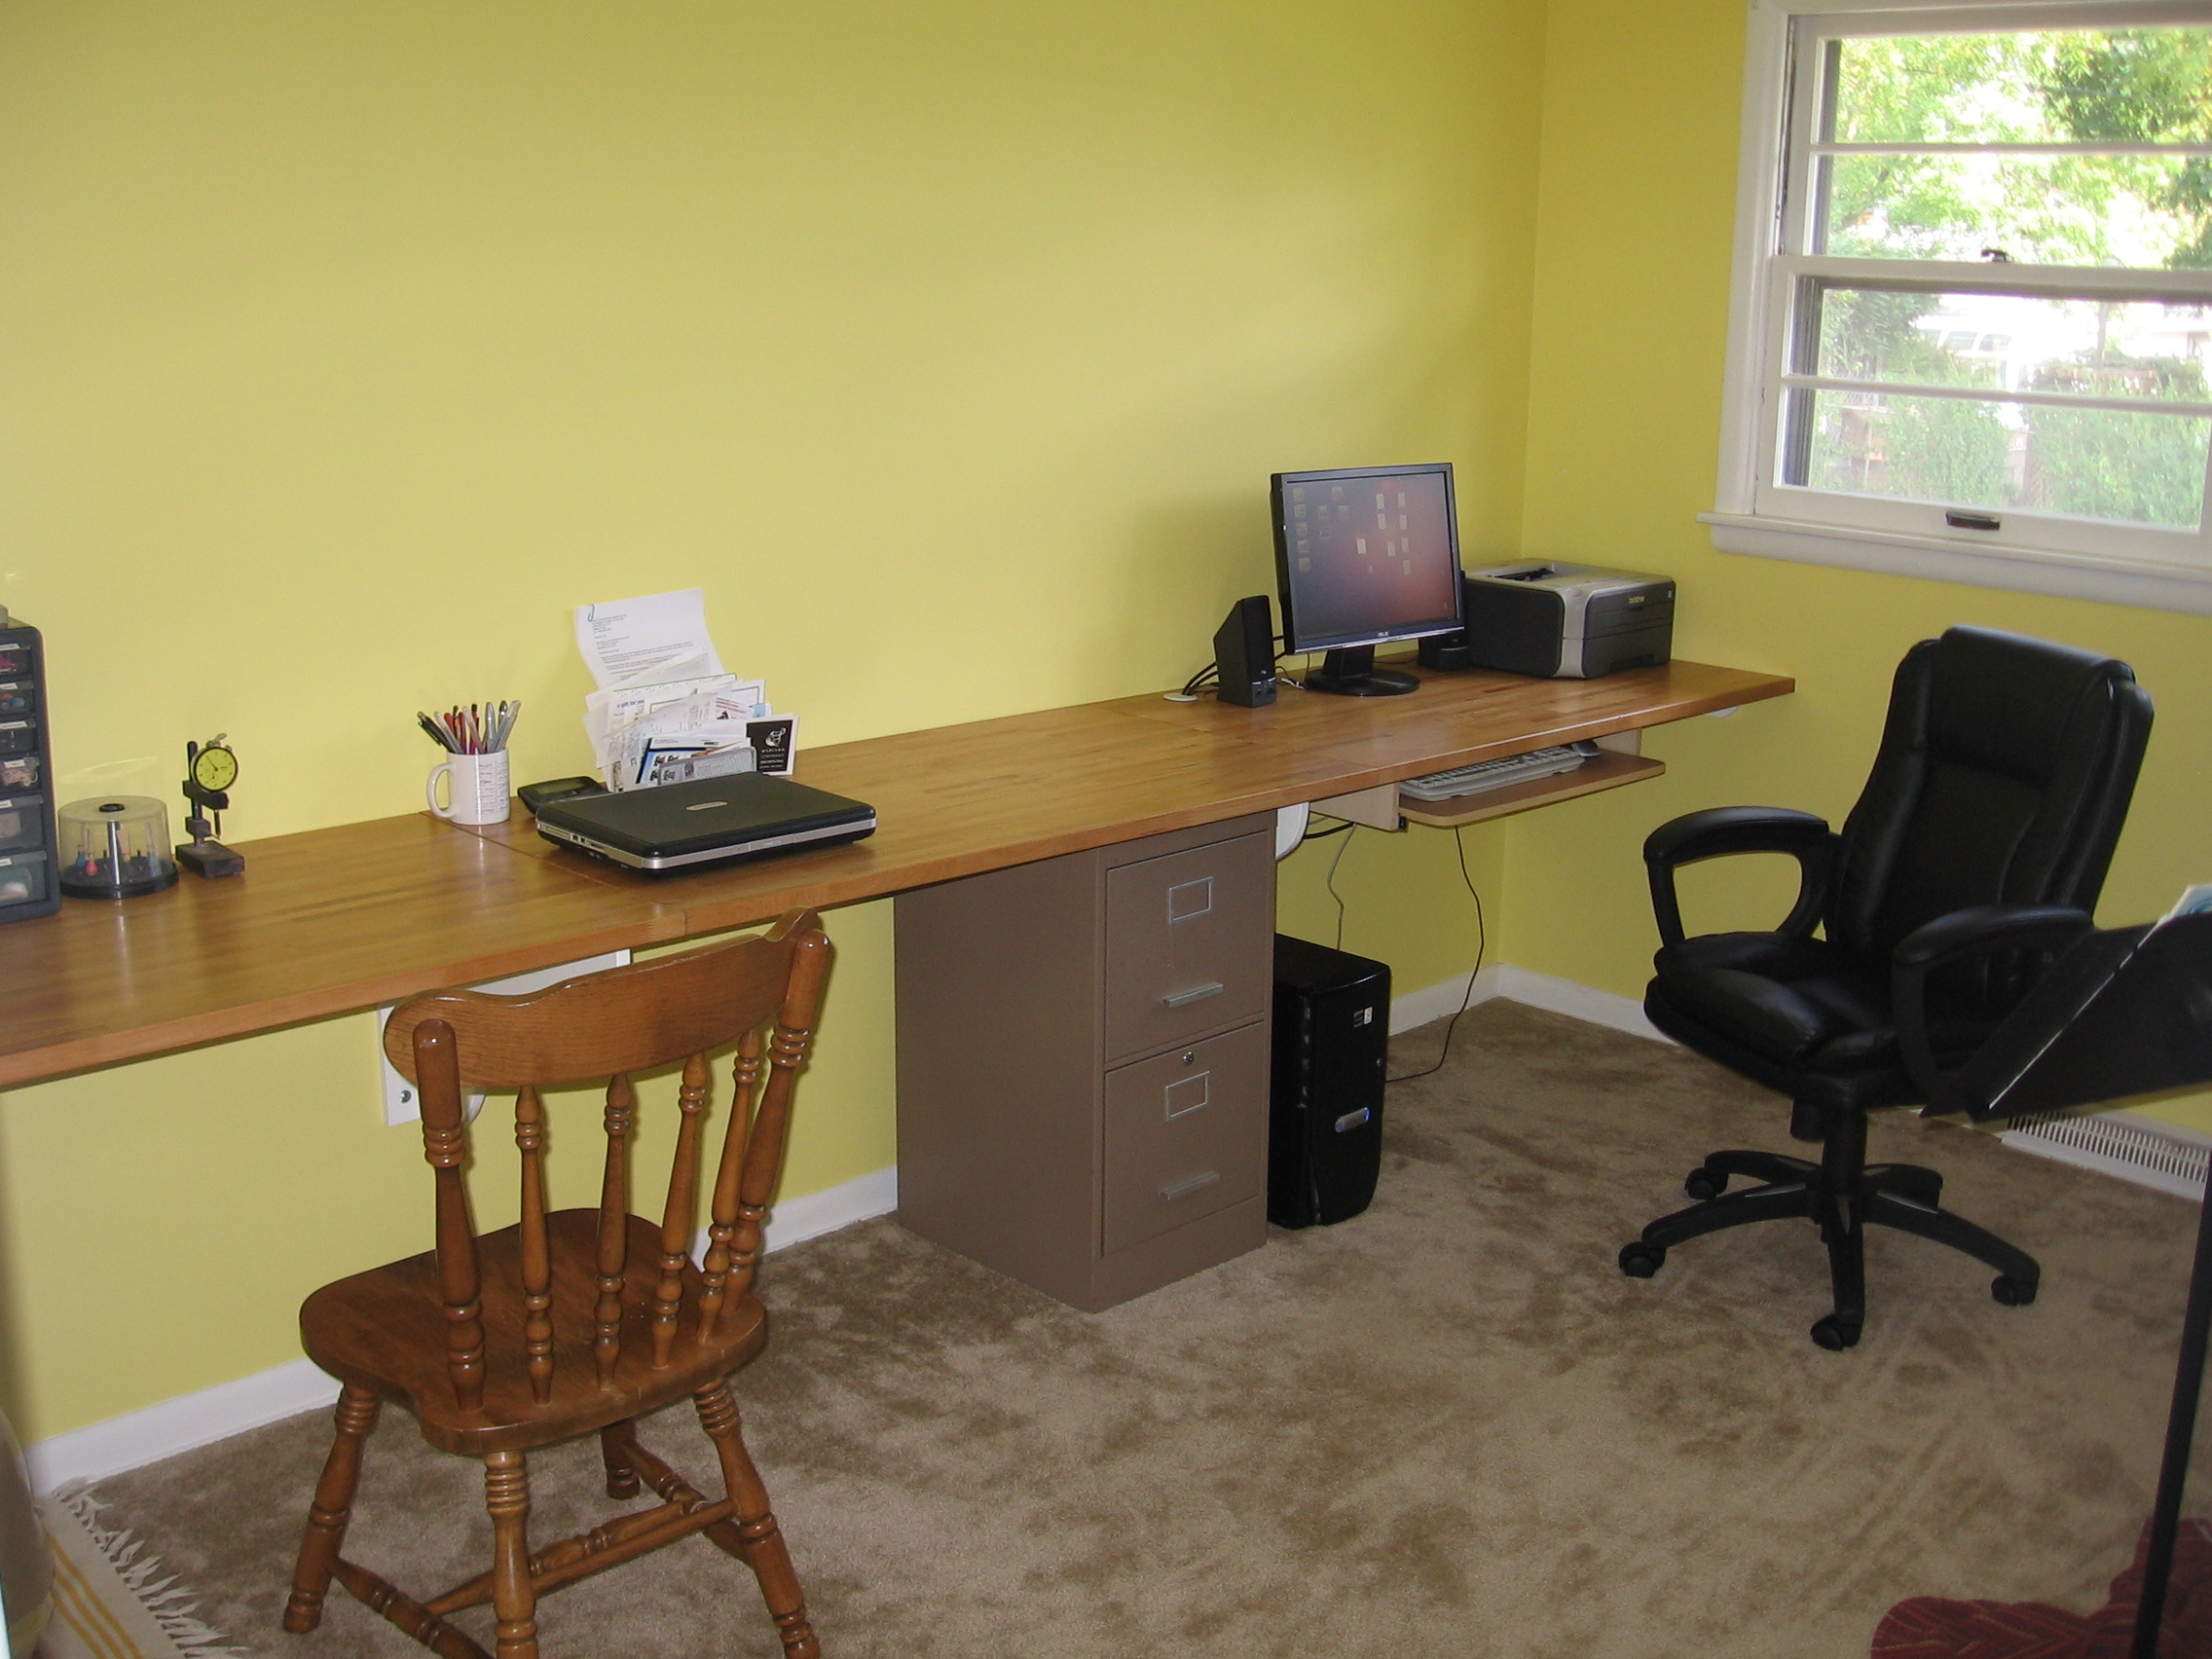 Built-in Desk Is Better Than Anything We Could Buy